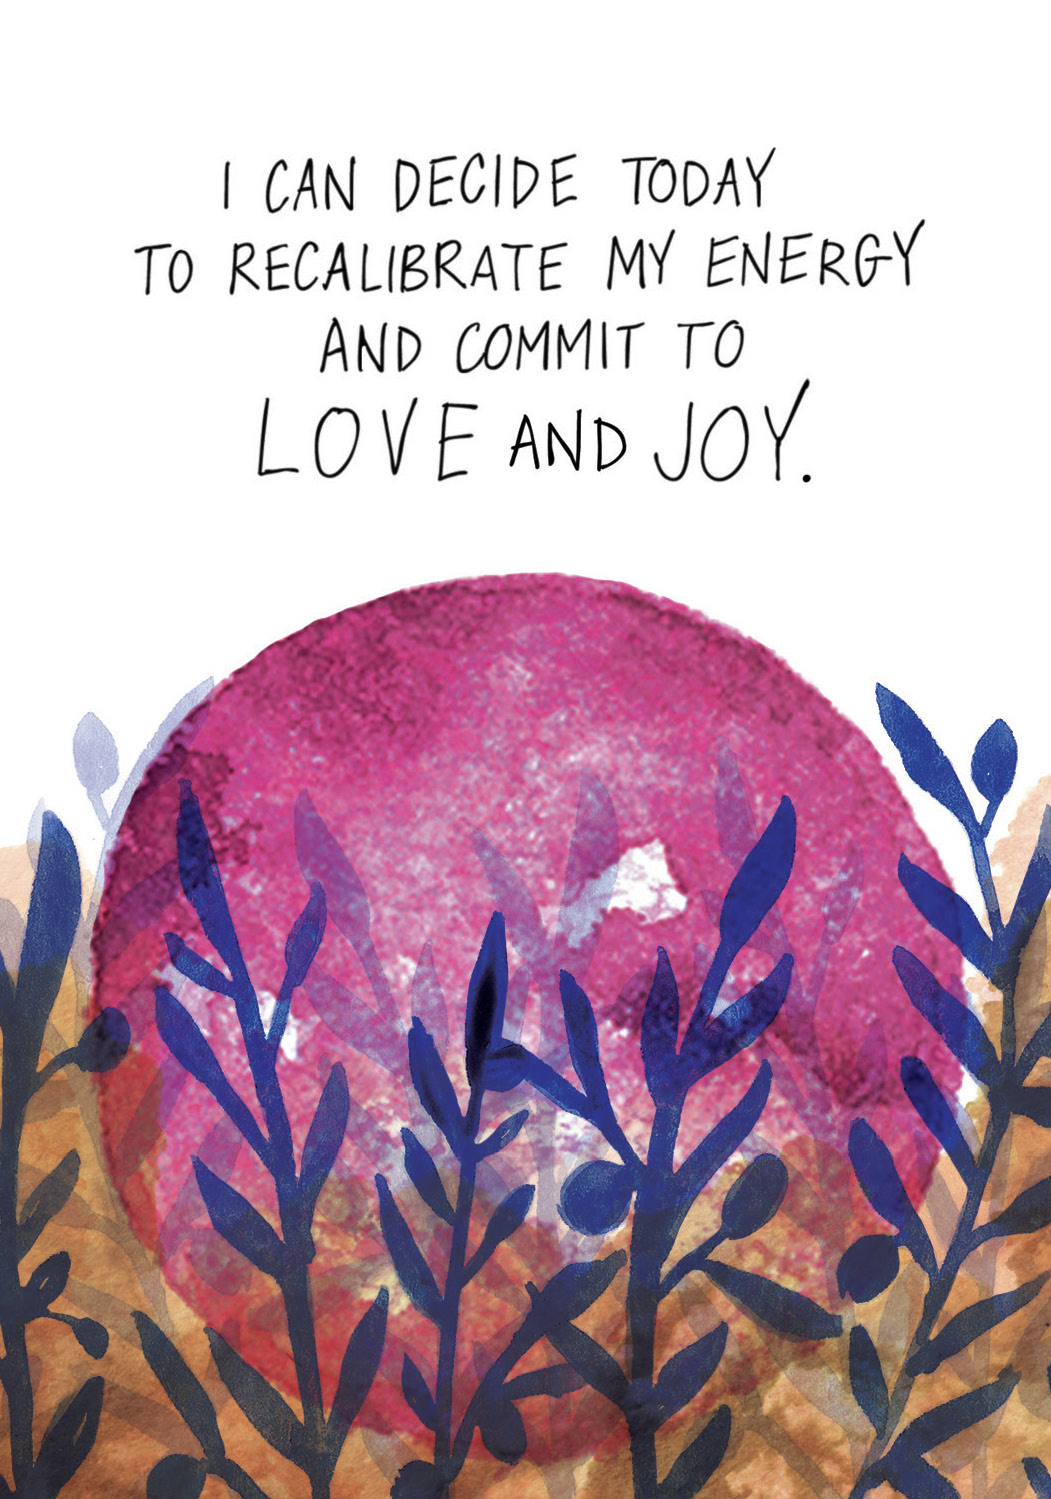 I can decide today to recalibrate my energy and commit to love and joy | Super Attractor card deck